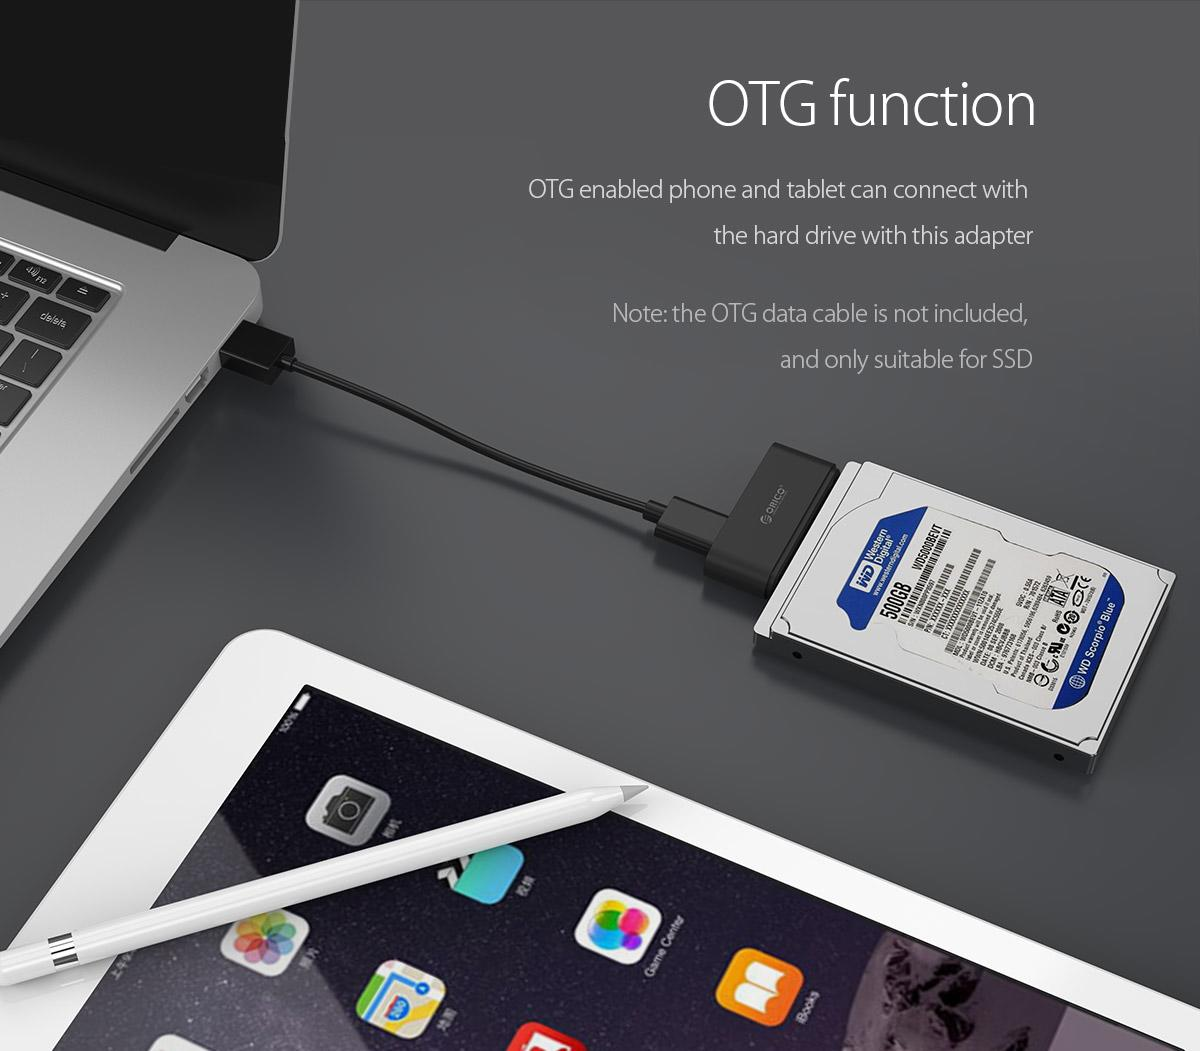 OTG enabled phone and tablet can be connected with the hard drive through this adapter